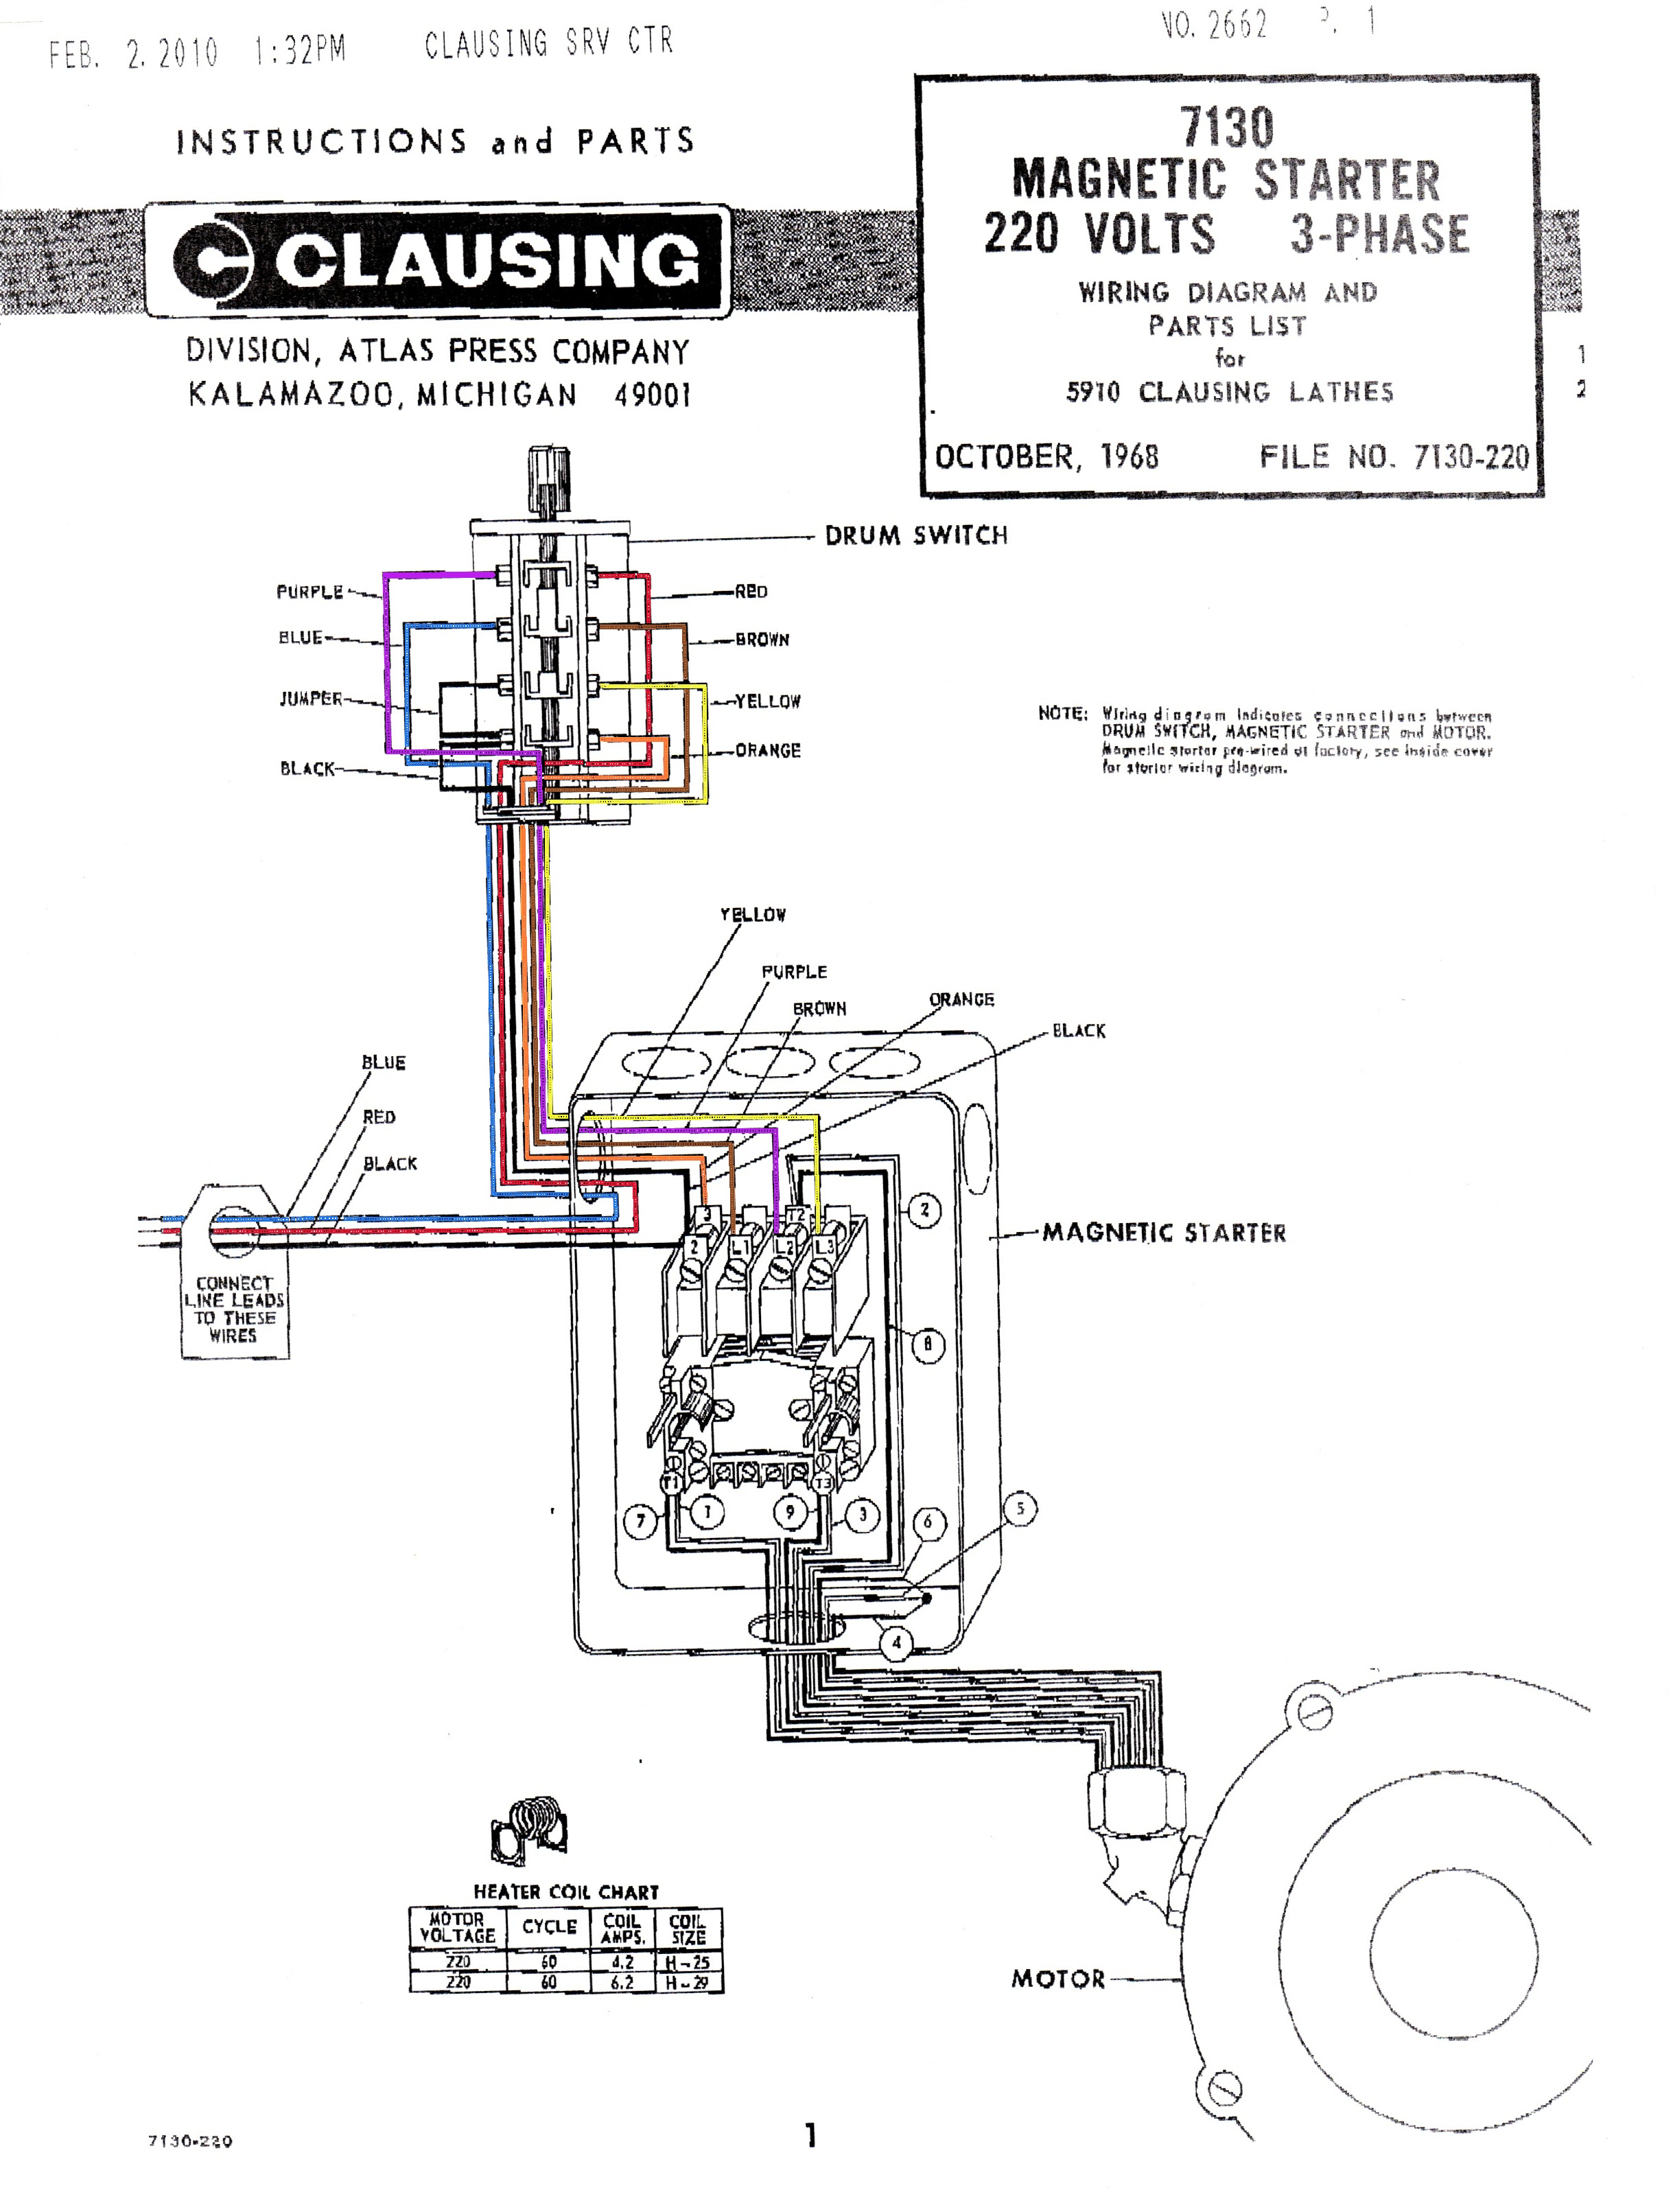 7130 Magnetic Starter Wiring Diagram Color starter wiring diagrams mag wiring diagrams instruction starter wiring diagram at metegol.co